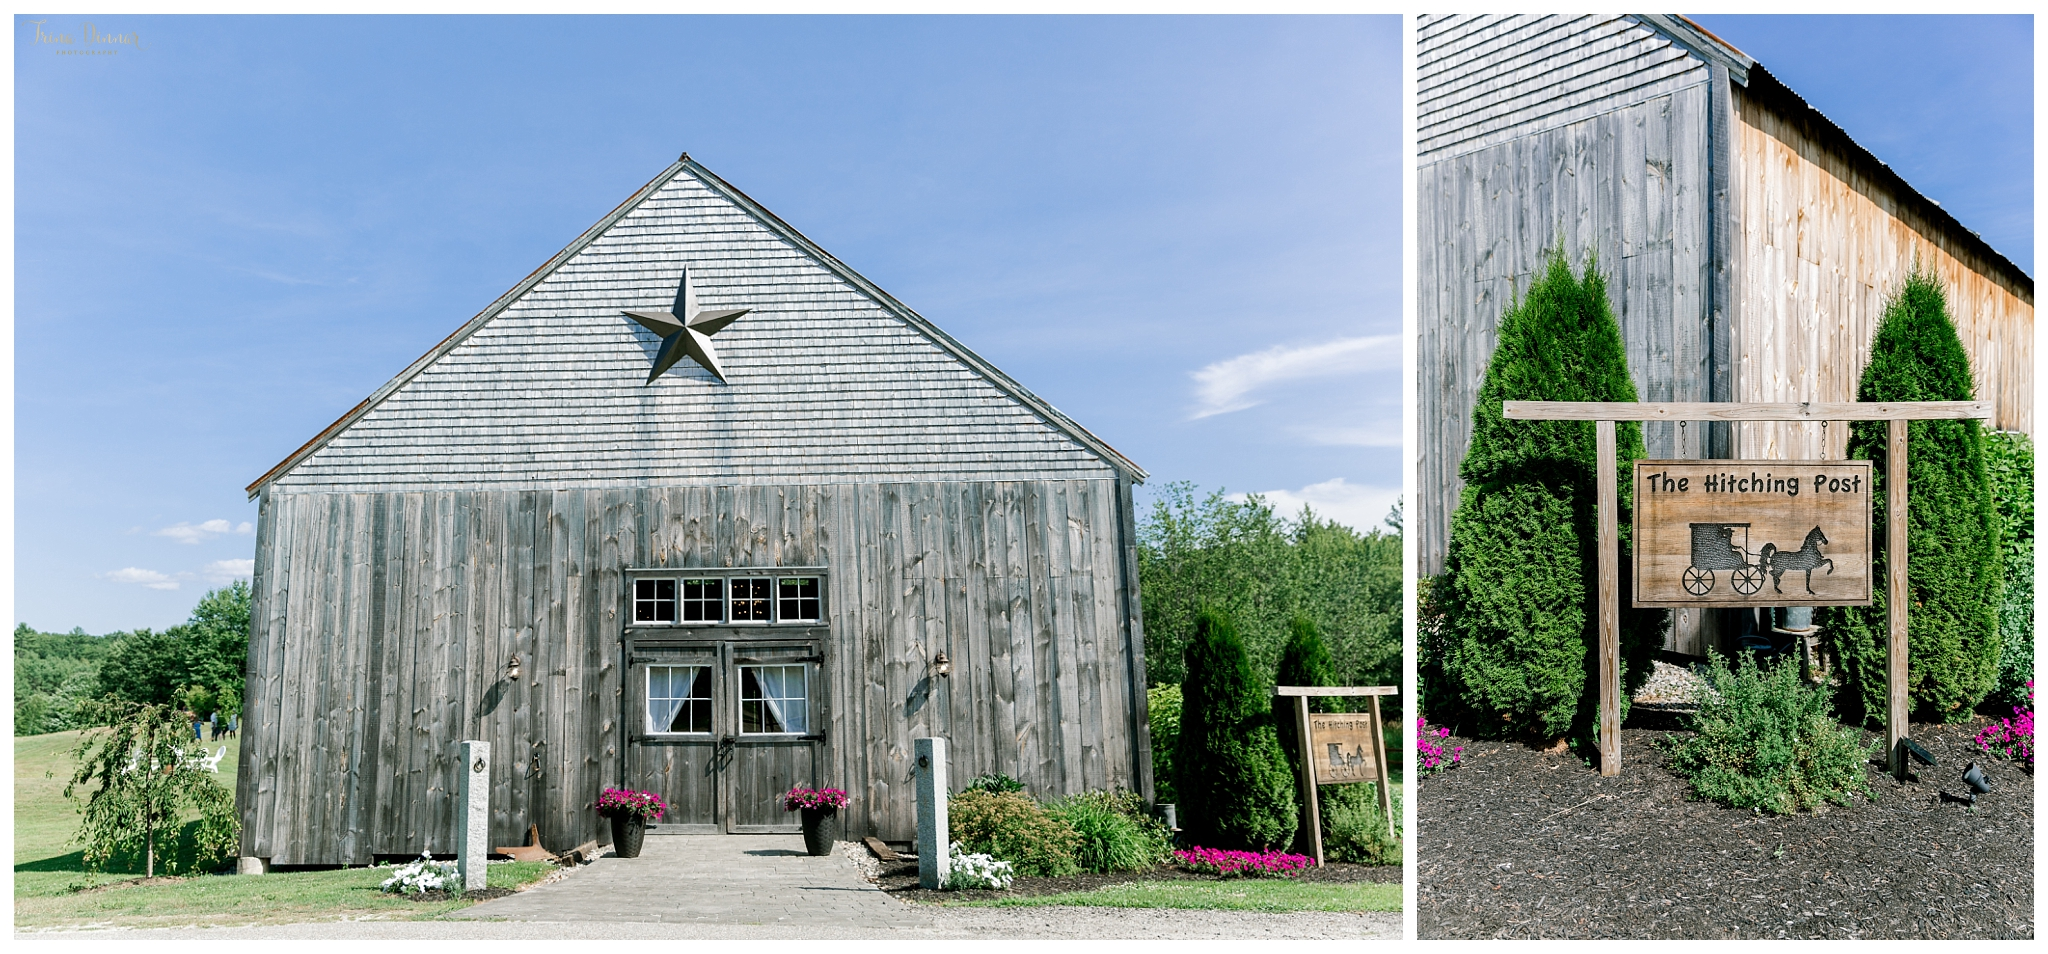 The Hitching Post is a wedding venue in Dayton, Maine.